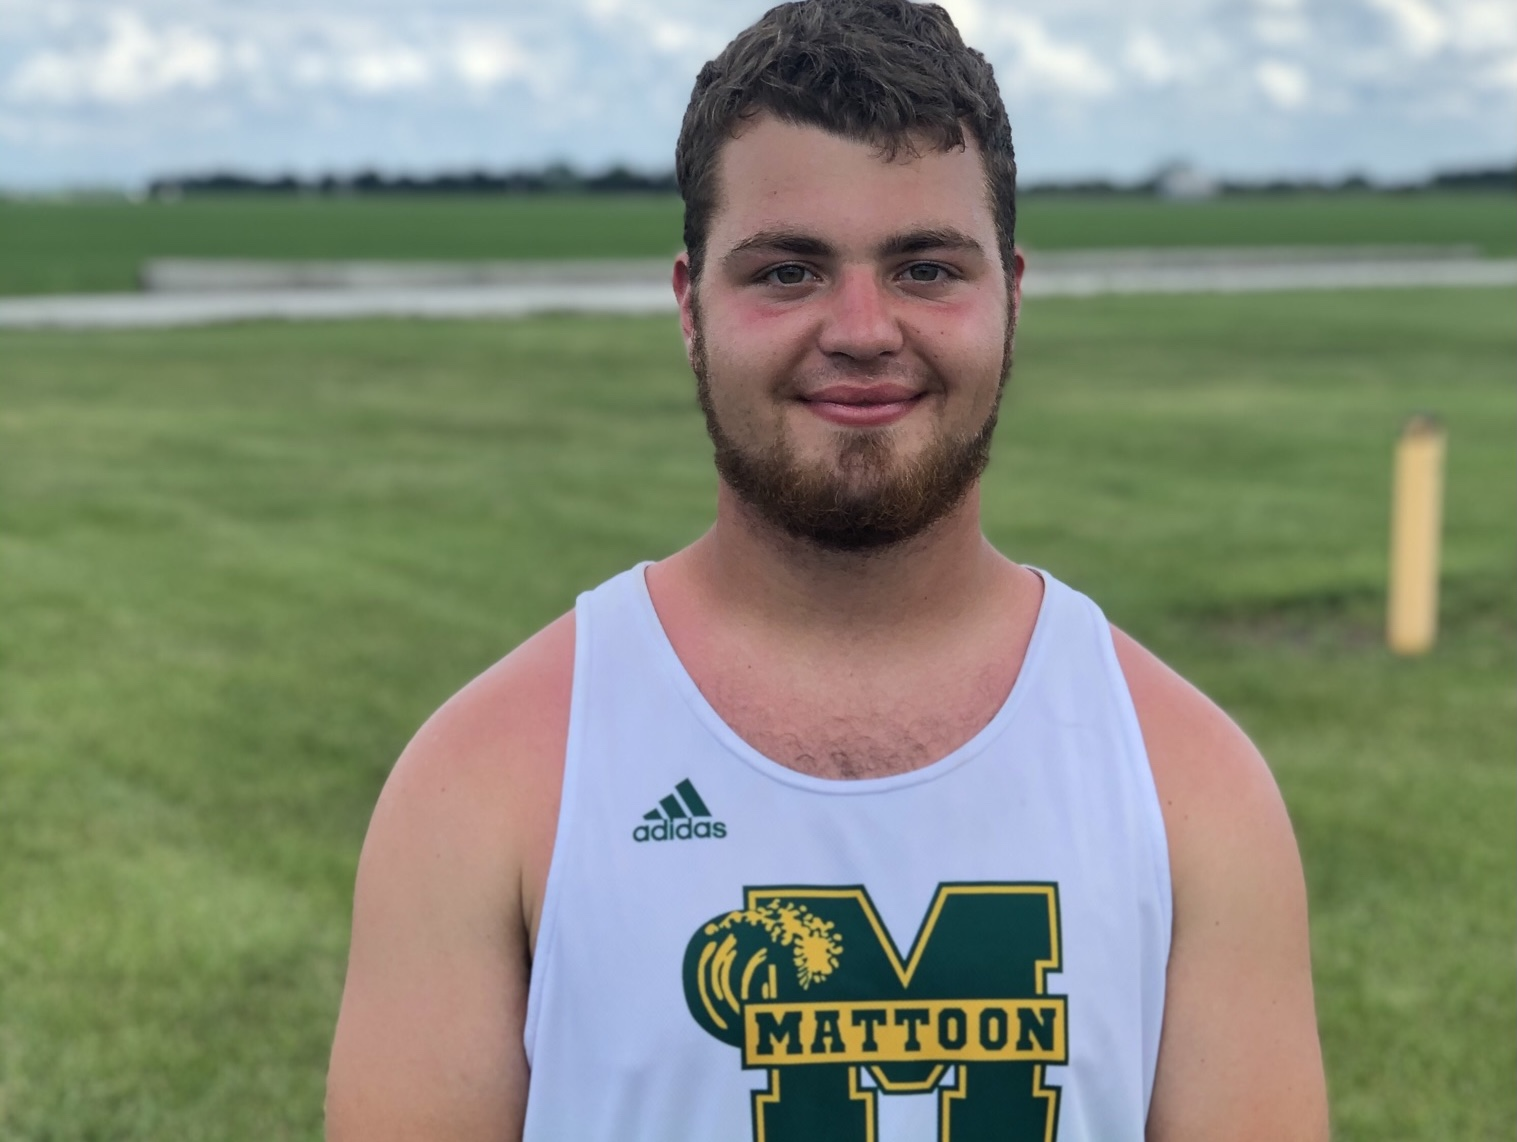 Mattoon's Dakota Spencer has sights on All-State awards in discus